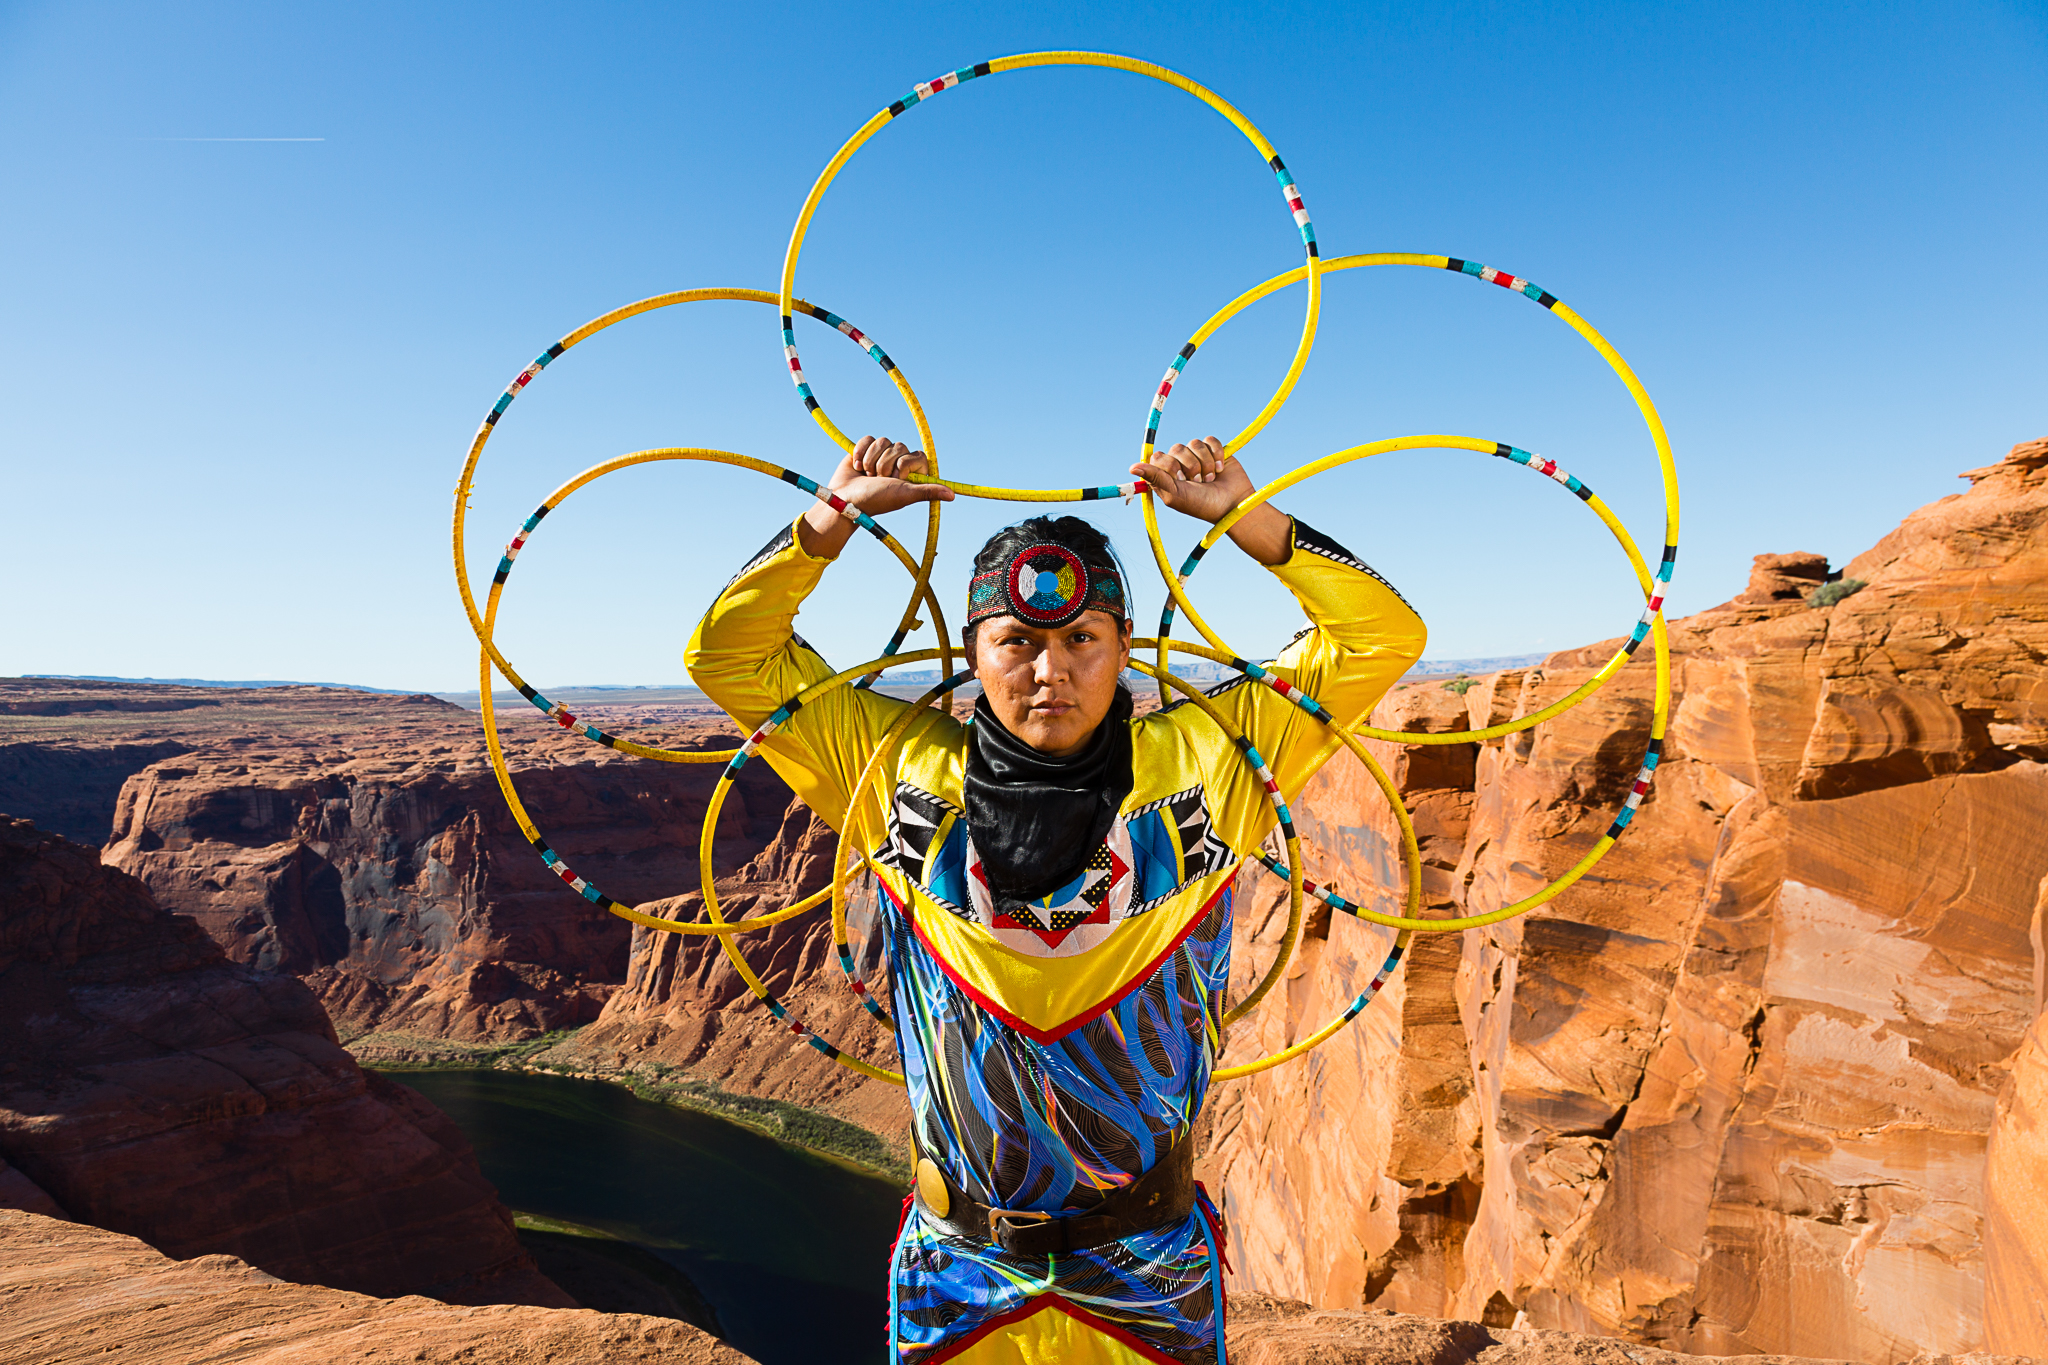 Native American hoop dancer Joseph Secody. Good looks, nerves of steel; the drop behind him is about a thousand feet. Canon 5D III, 24-105mm f/4 at f/11 and 1/100th of a second. Off-camera strobe in an octobox.